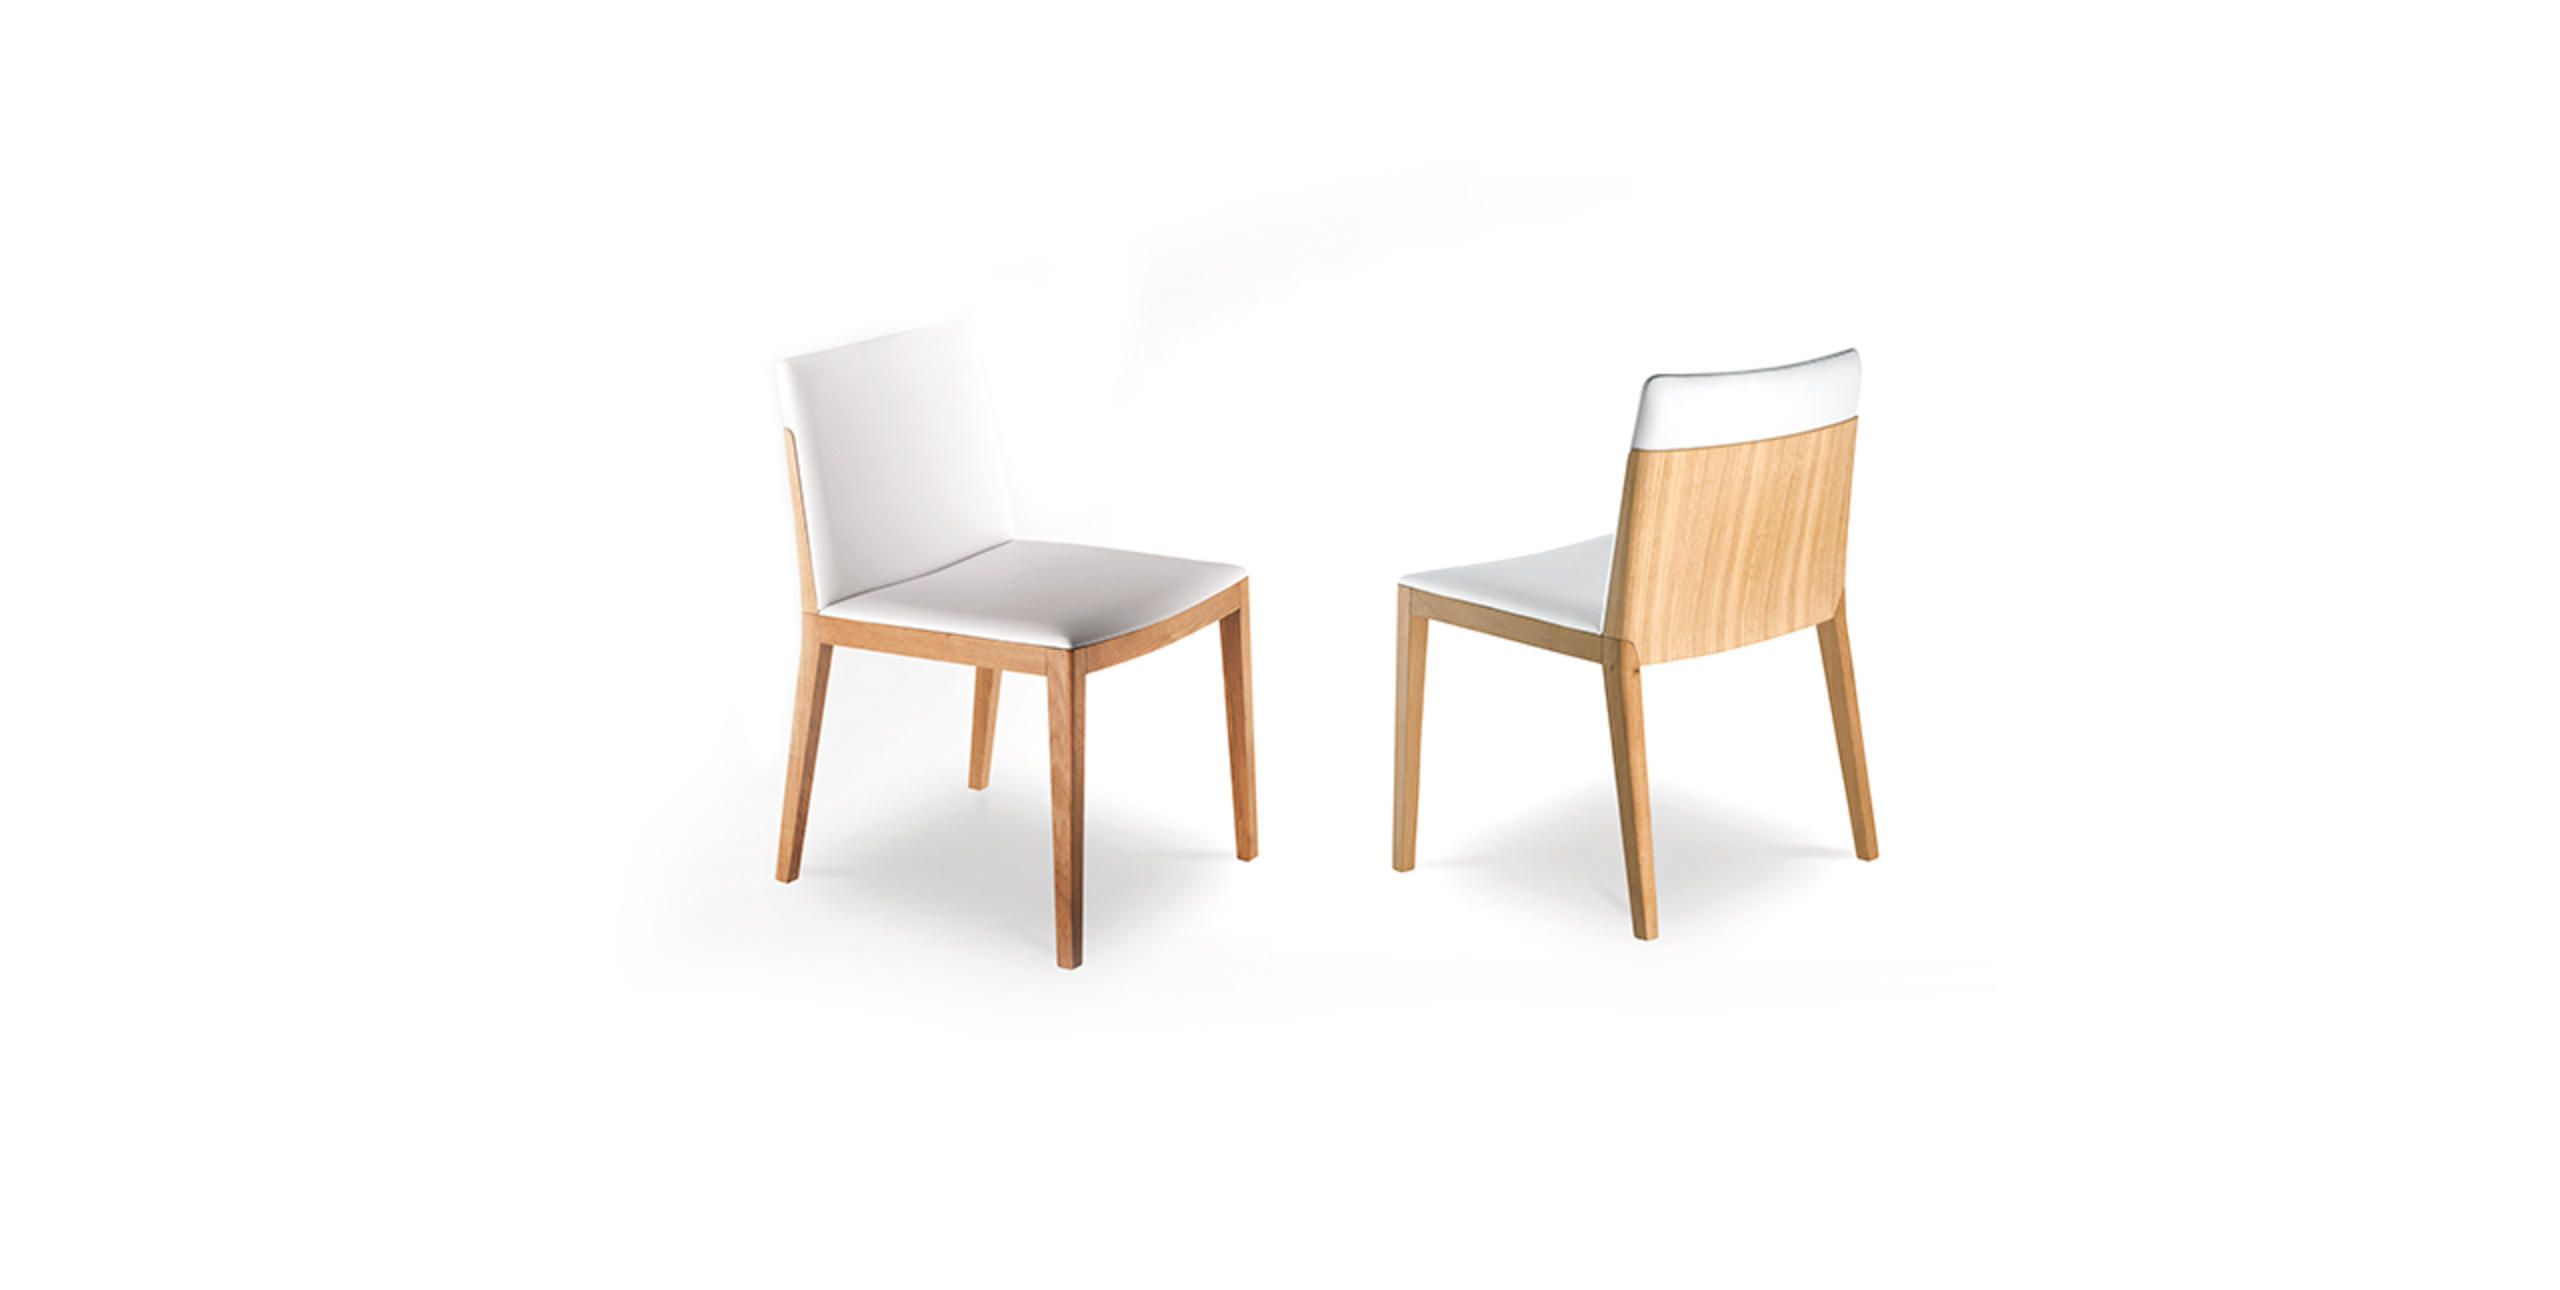 Genial Find Out More About The Beatrice Chair By Monica Förster And Explore  Poltrona Frauu0027s Furniture Collection.